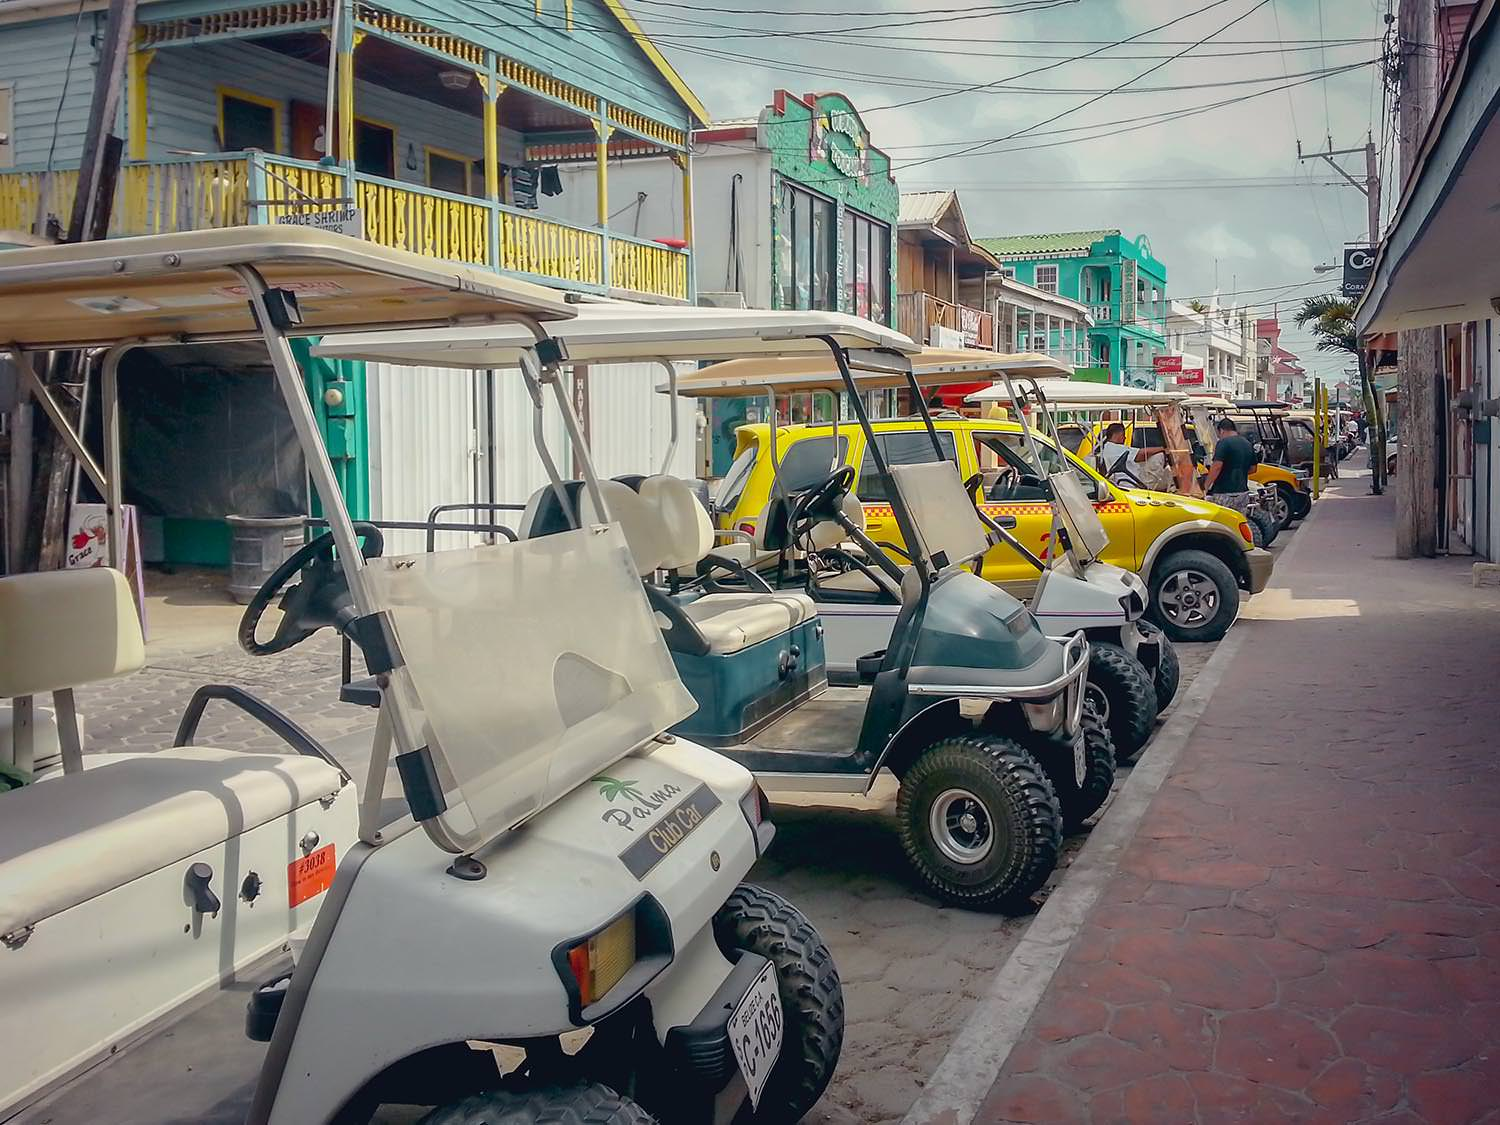 Watching confused octogenarians parking golf carts can be a fun afternoon activity in San Pedro.